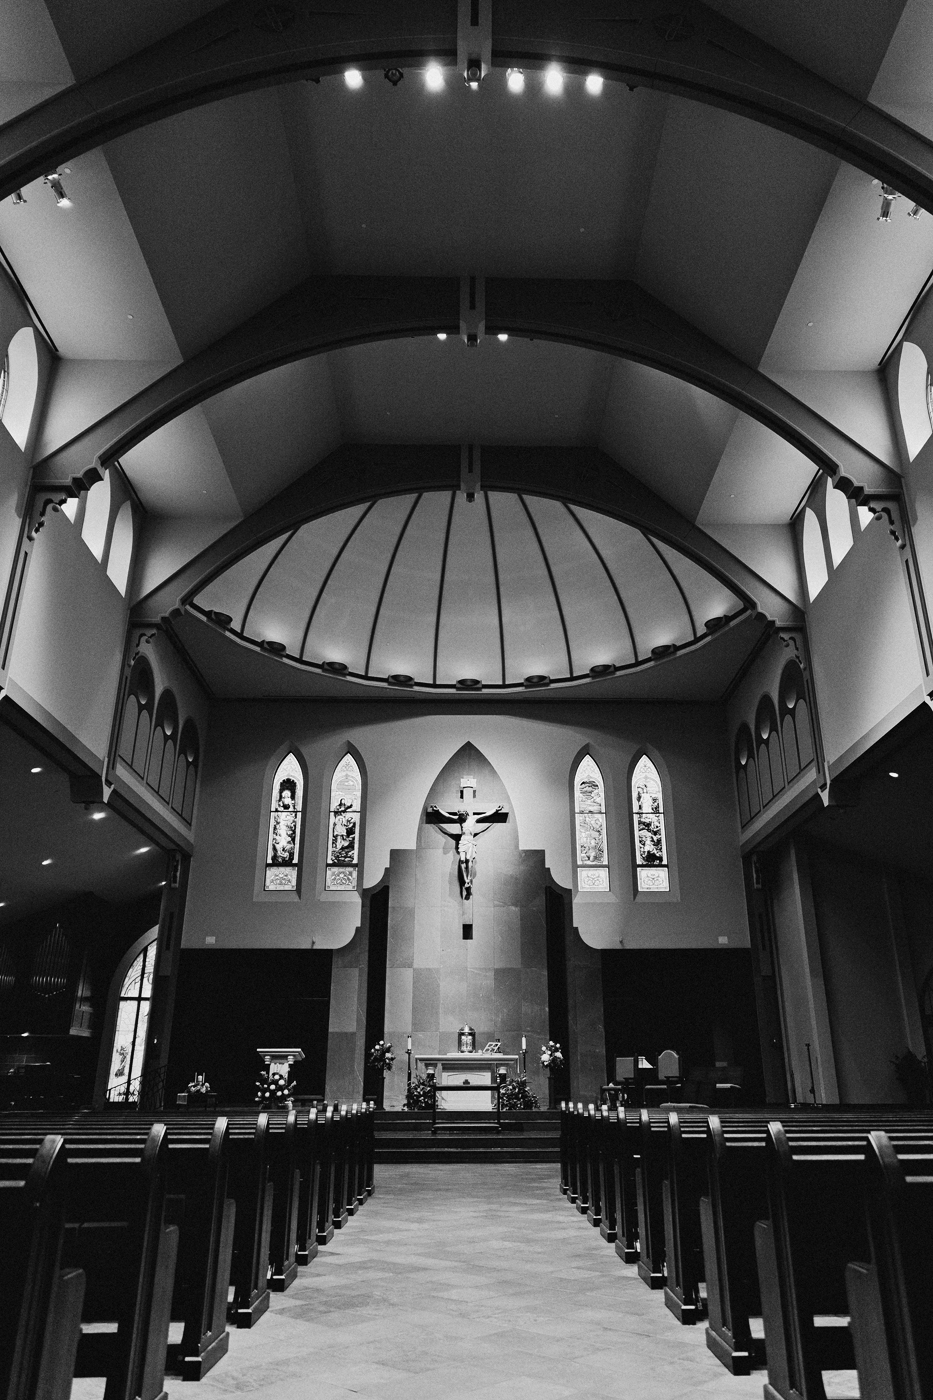 Interior view of St. Michael Catholic Church